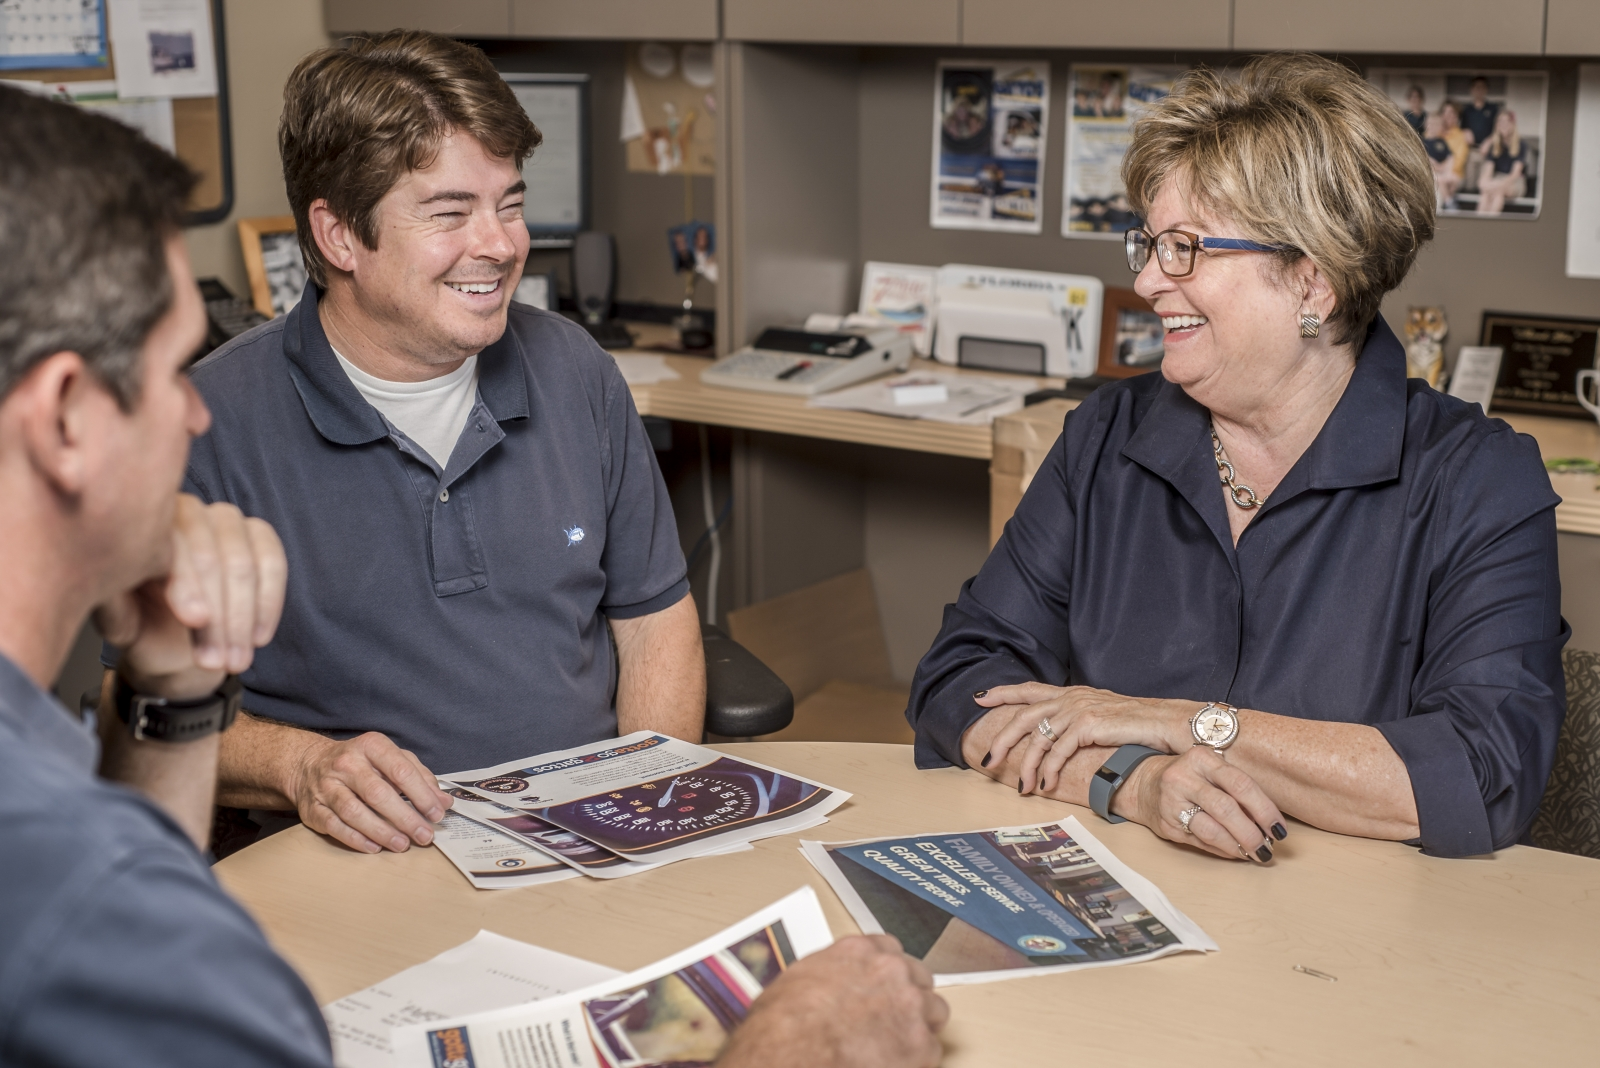 TRACKING PROFIT: Owner Pamela Gatto (right) begins each day by pulling reports, most importantly daily gross profit numbers, to go over with her managers.